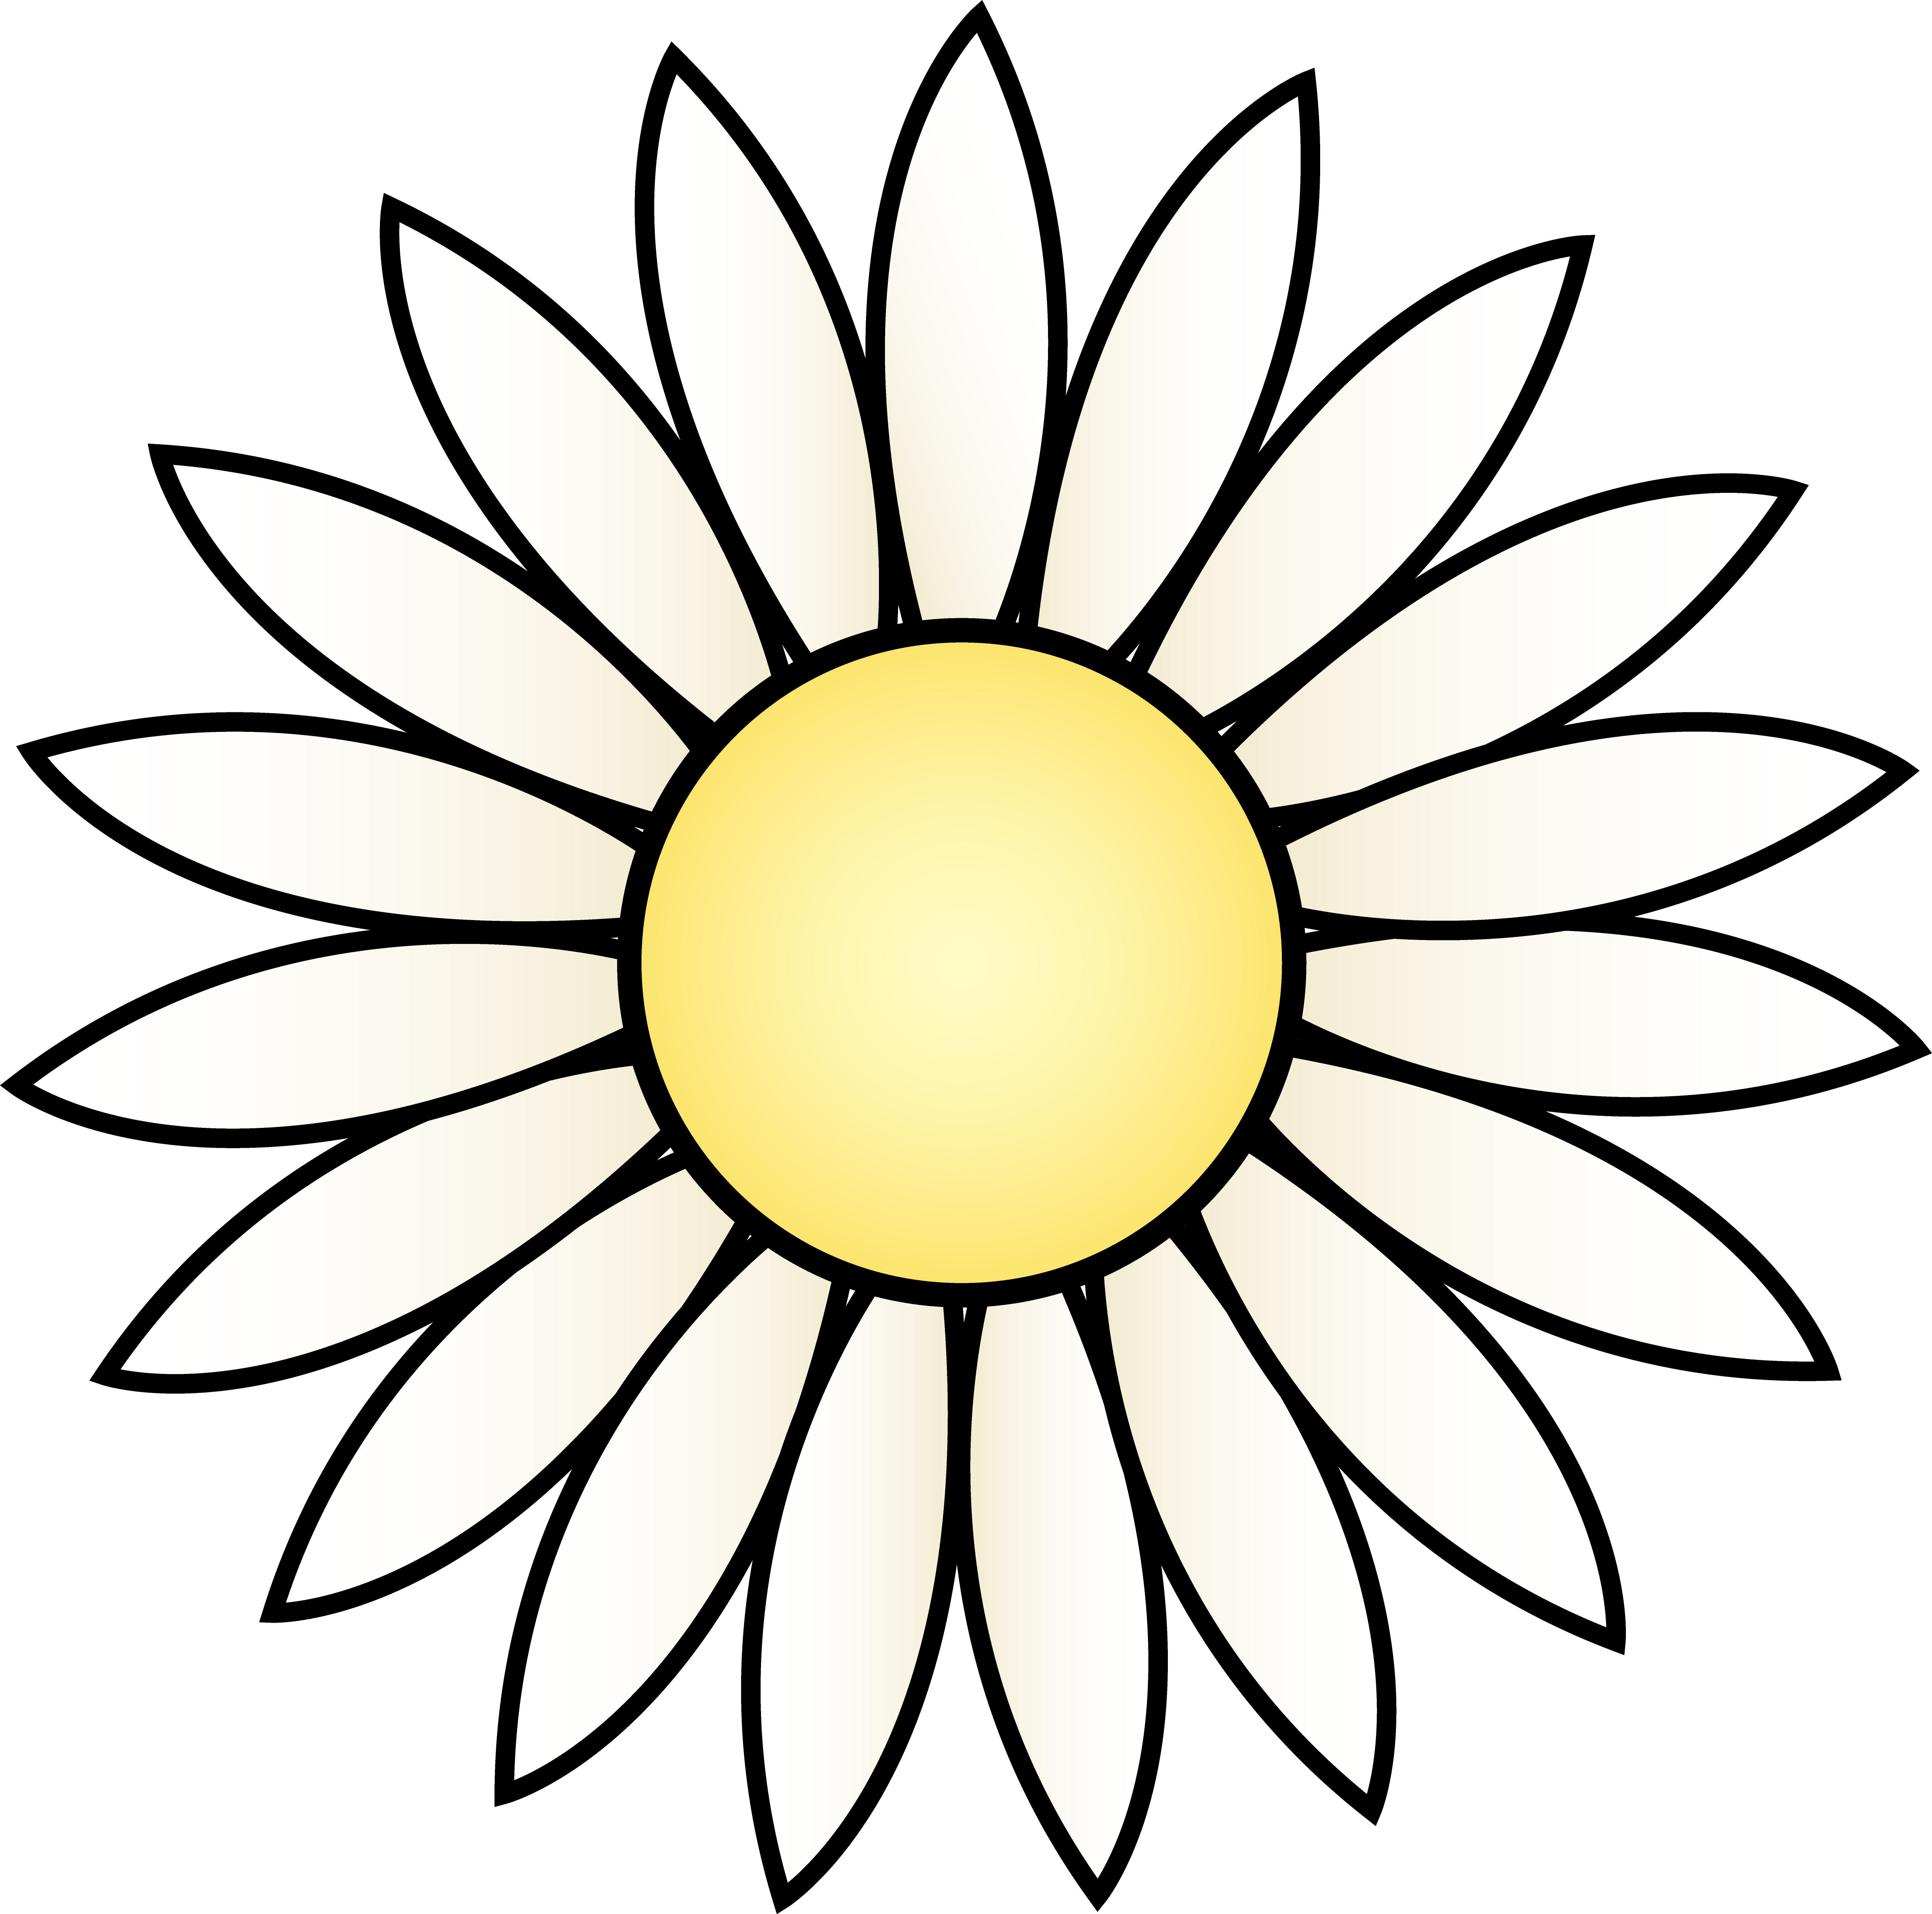 4948x4901 Daisy Clip Art Free Clipart Images 3